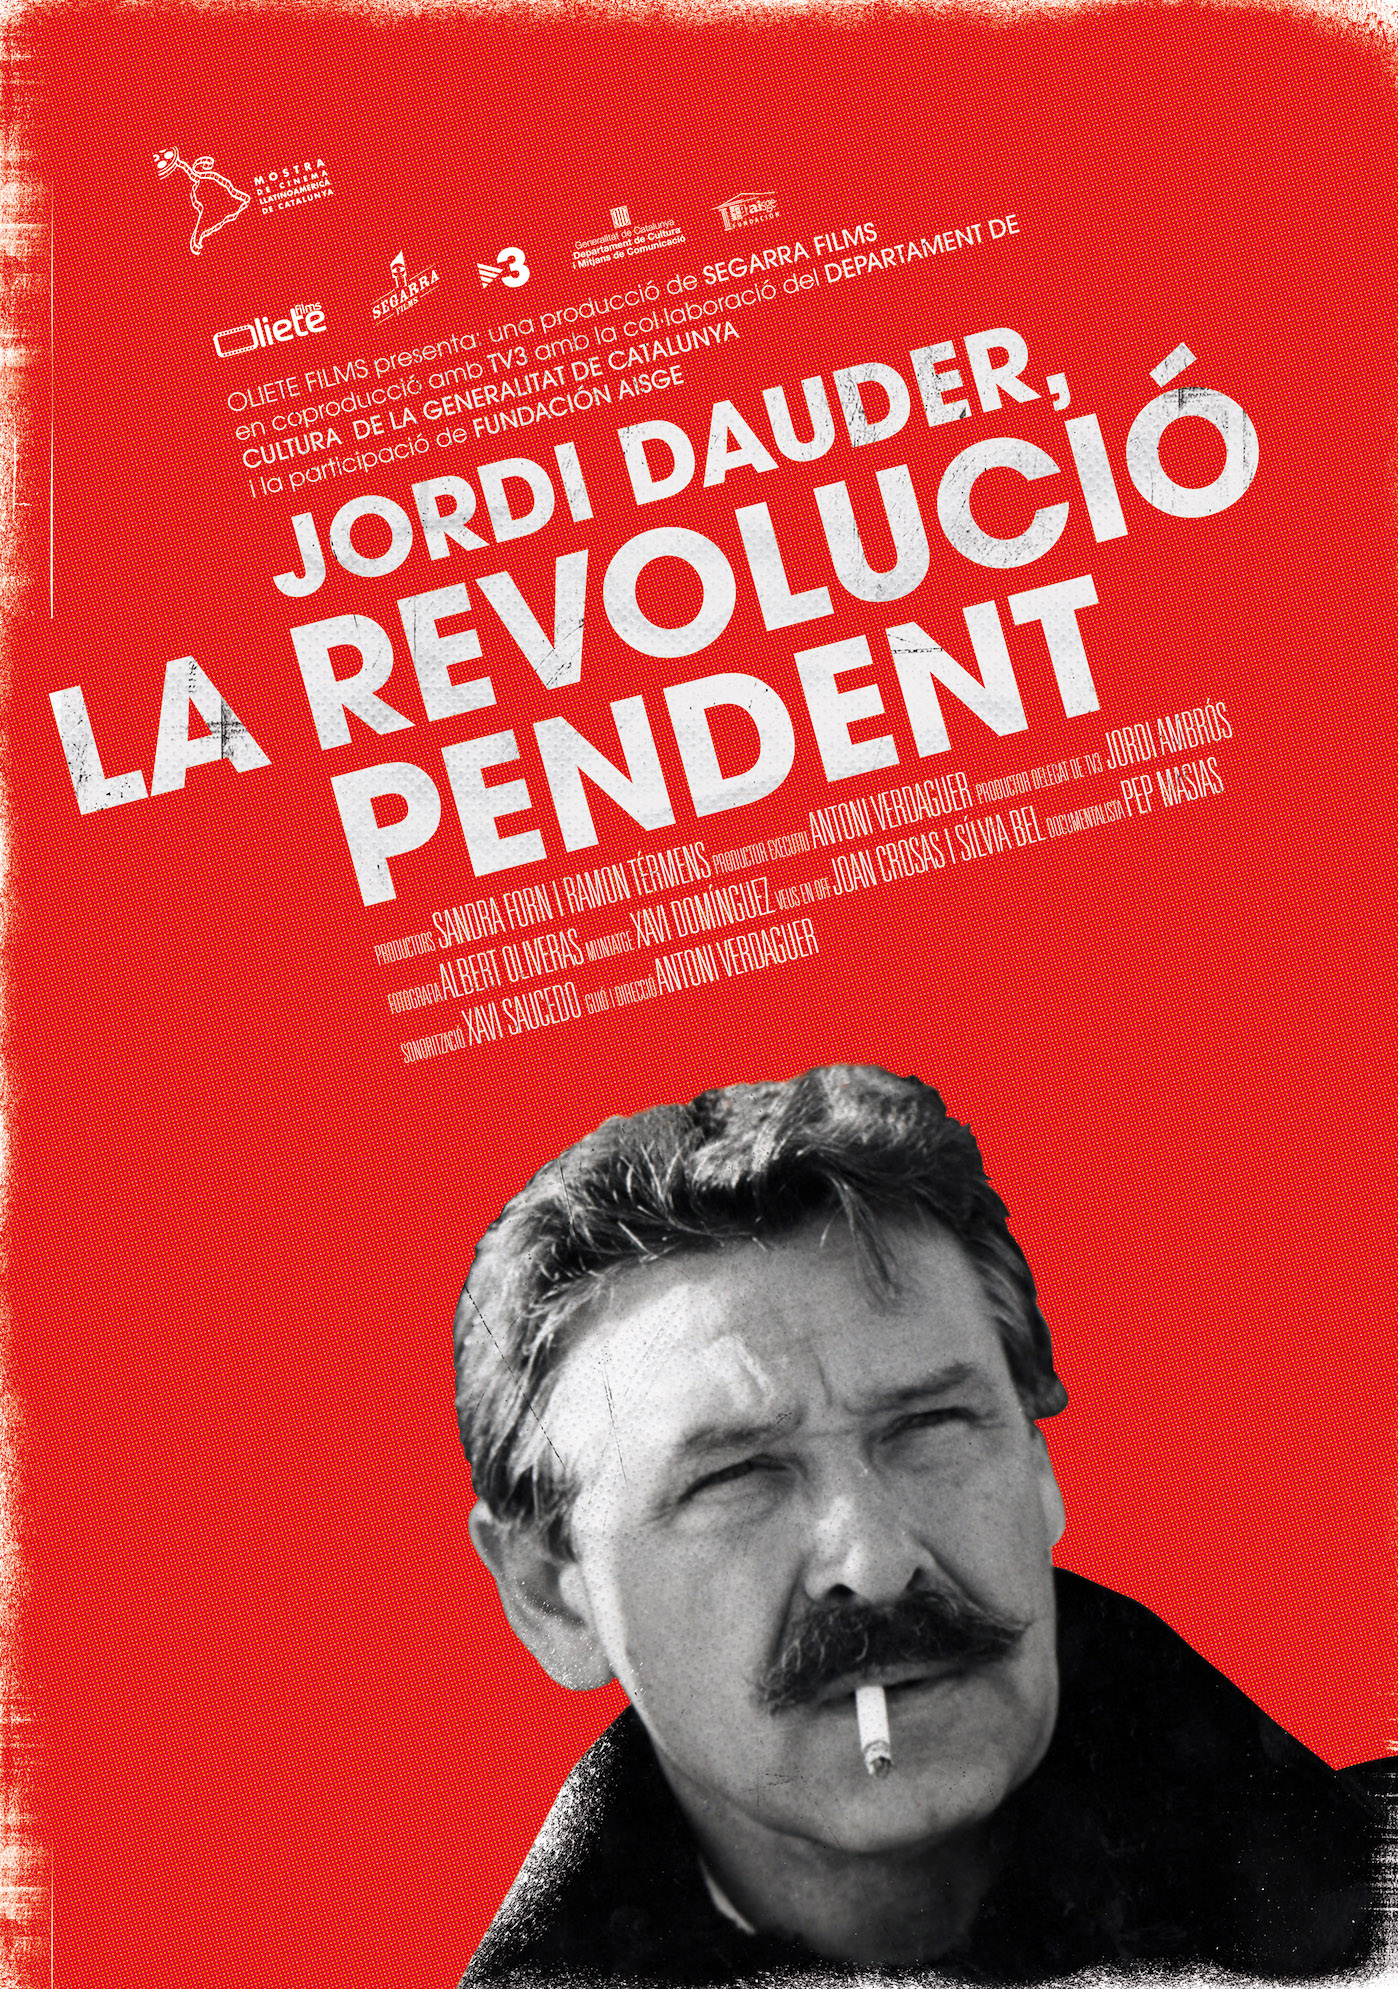 Jordi Dauder, The pending revolution